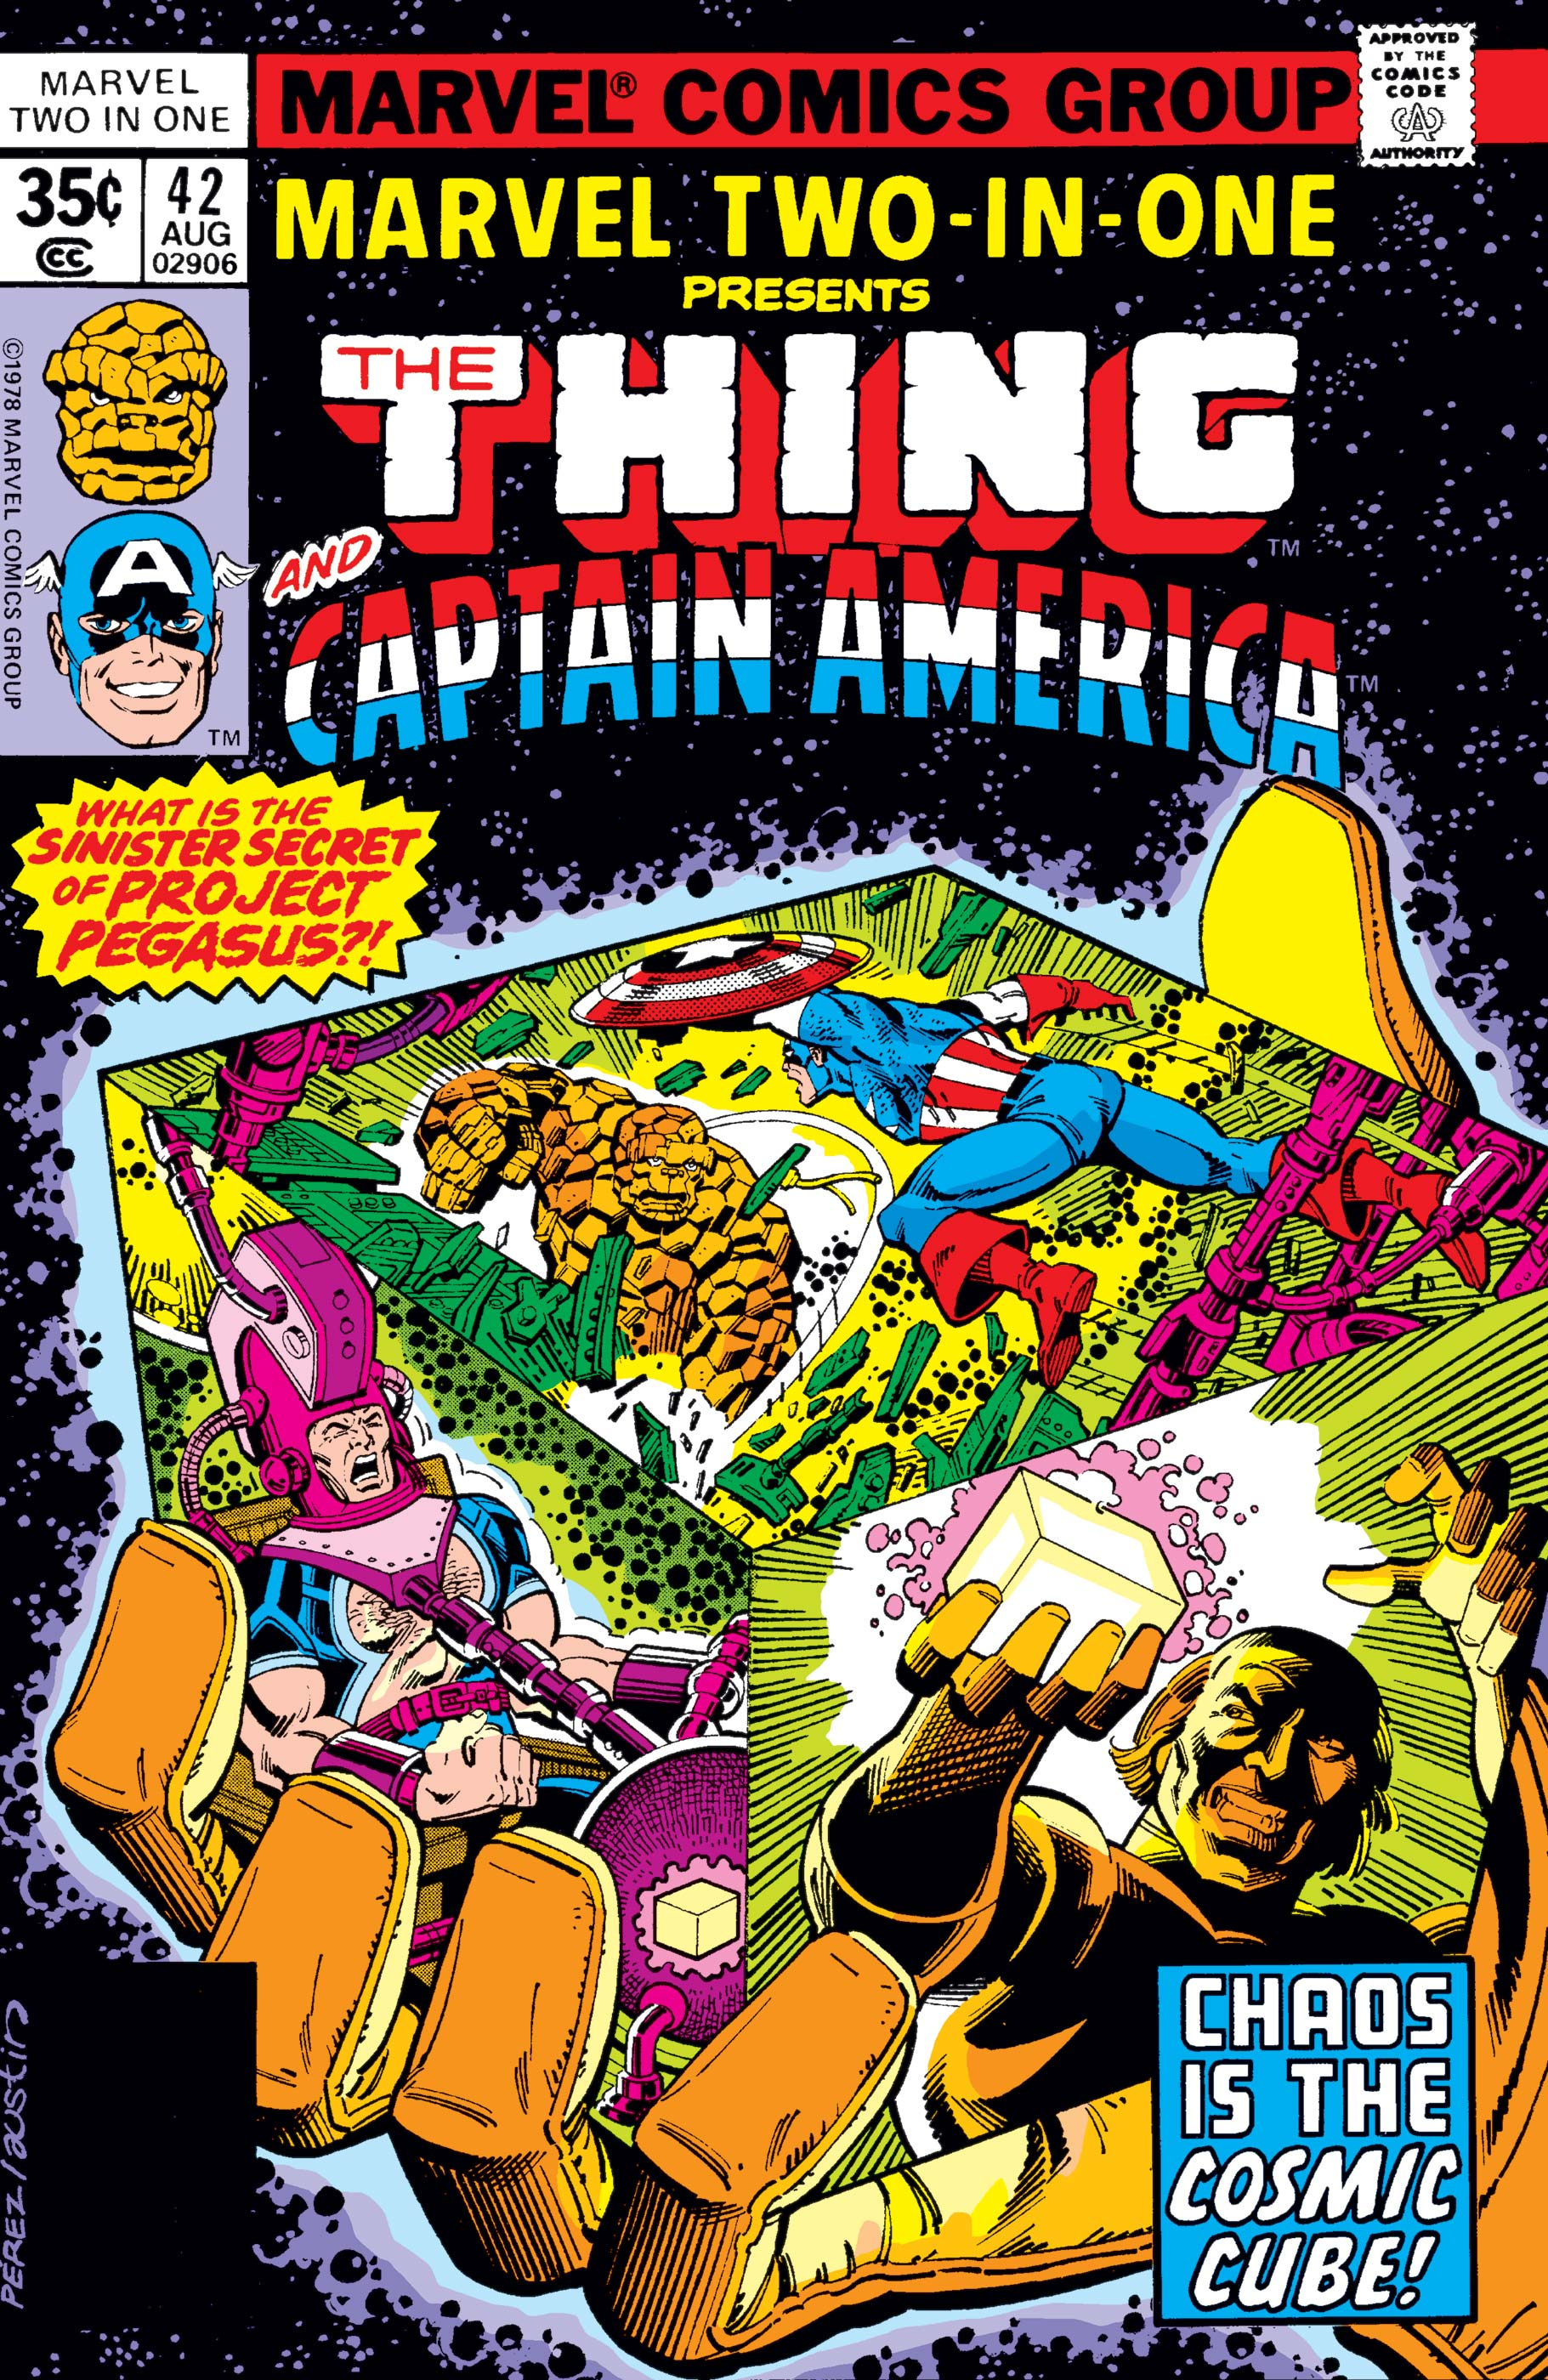 Marvel Two-in-One (1974) #42